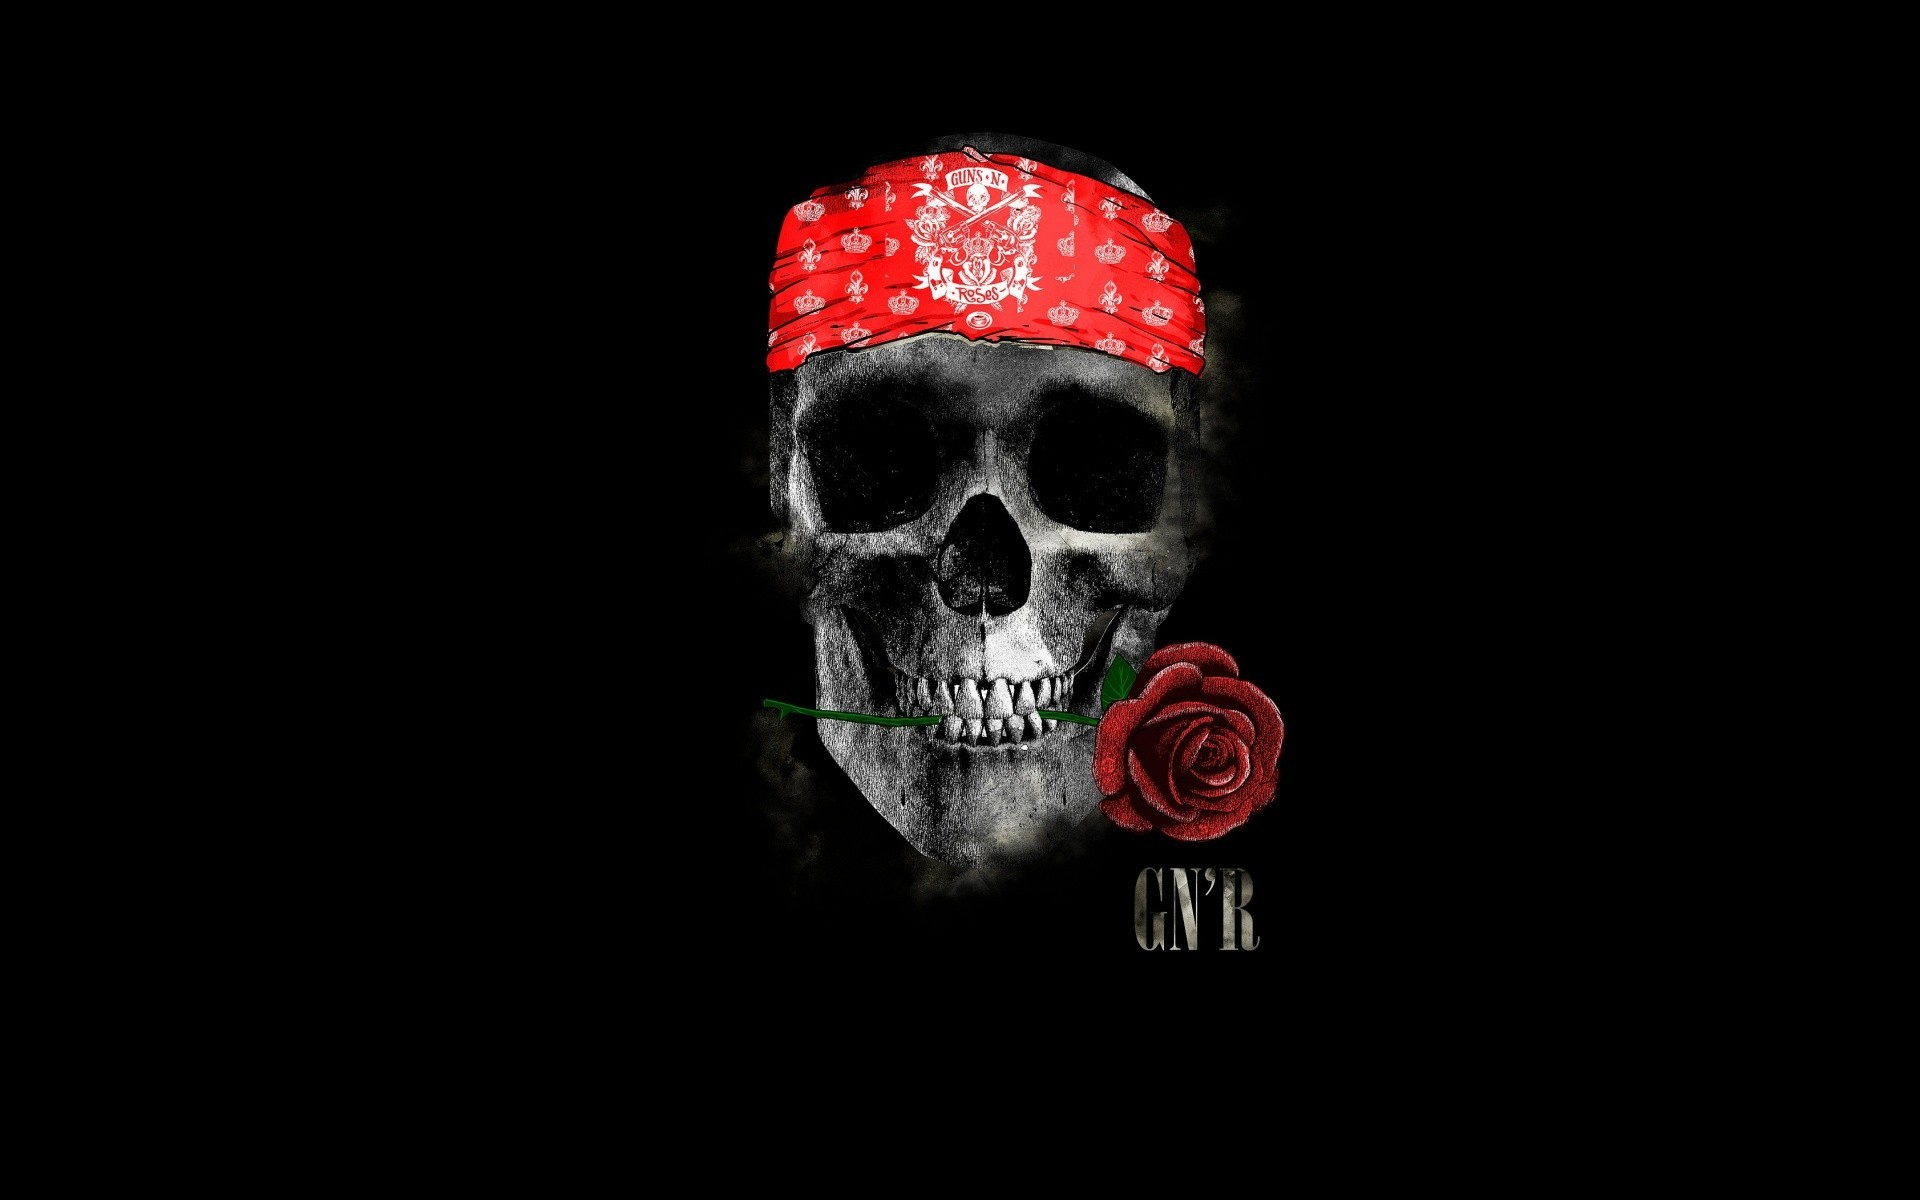 Gun N Roses Hd Artist 4k Wallpapers Images Backgrounds Photos